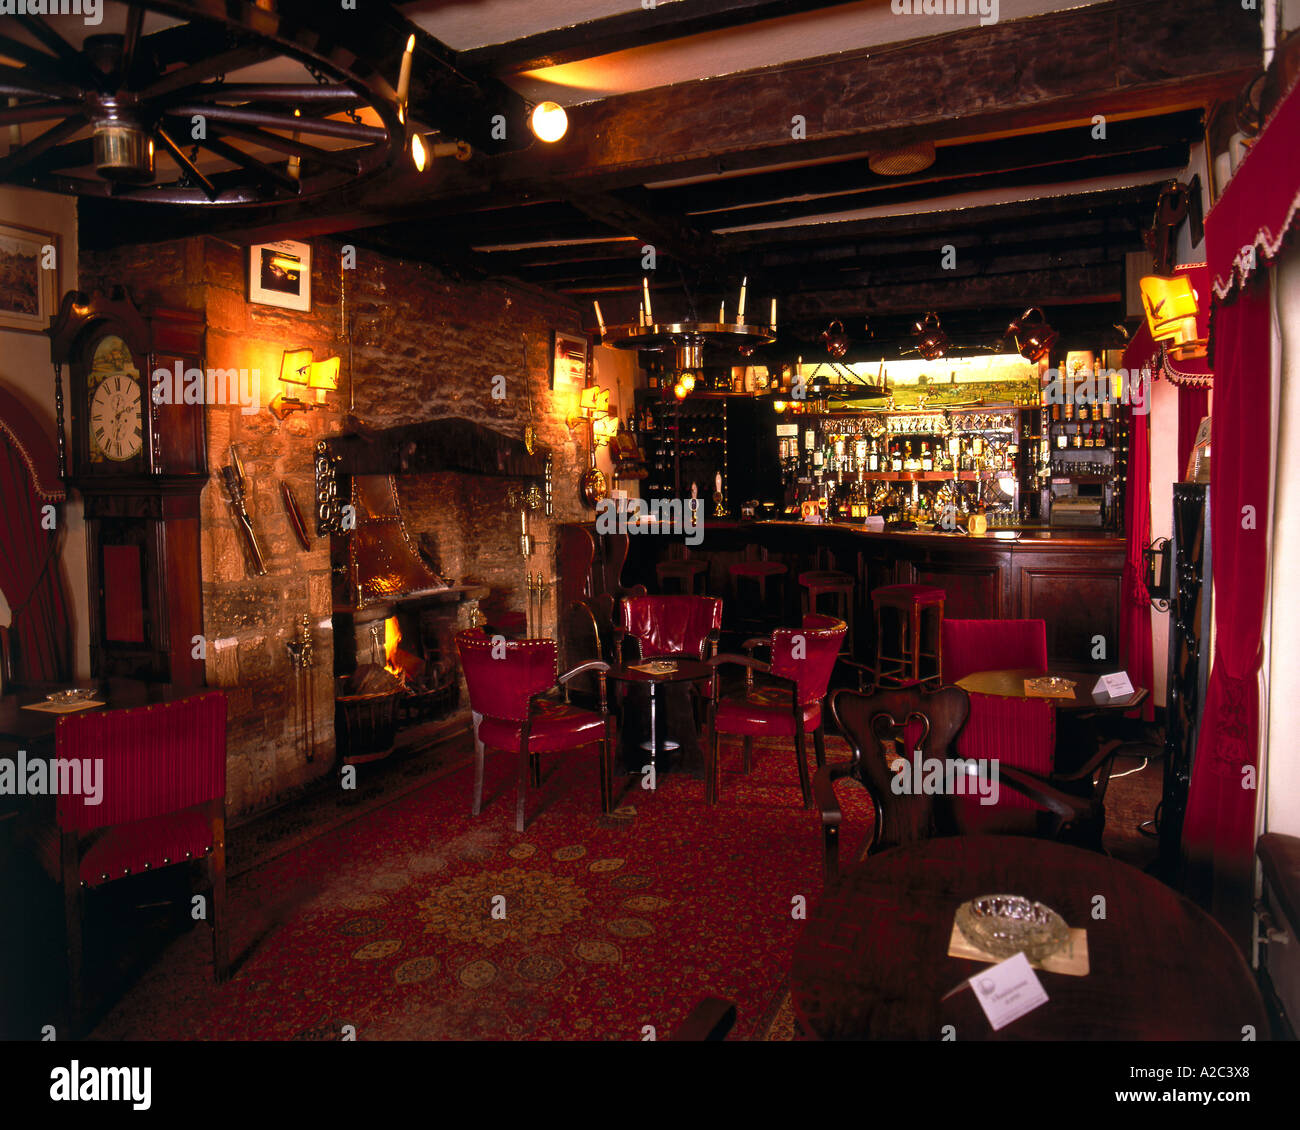 Interior of traditional old english pub stock photo for English house music